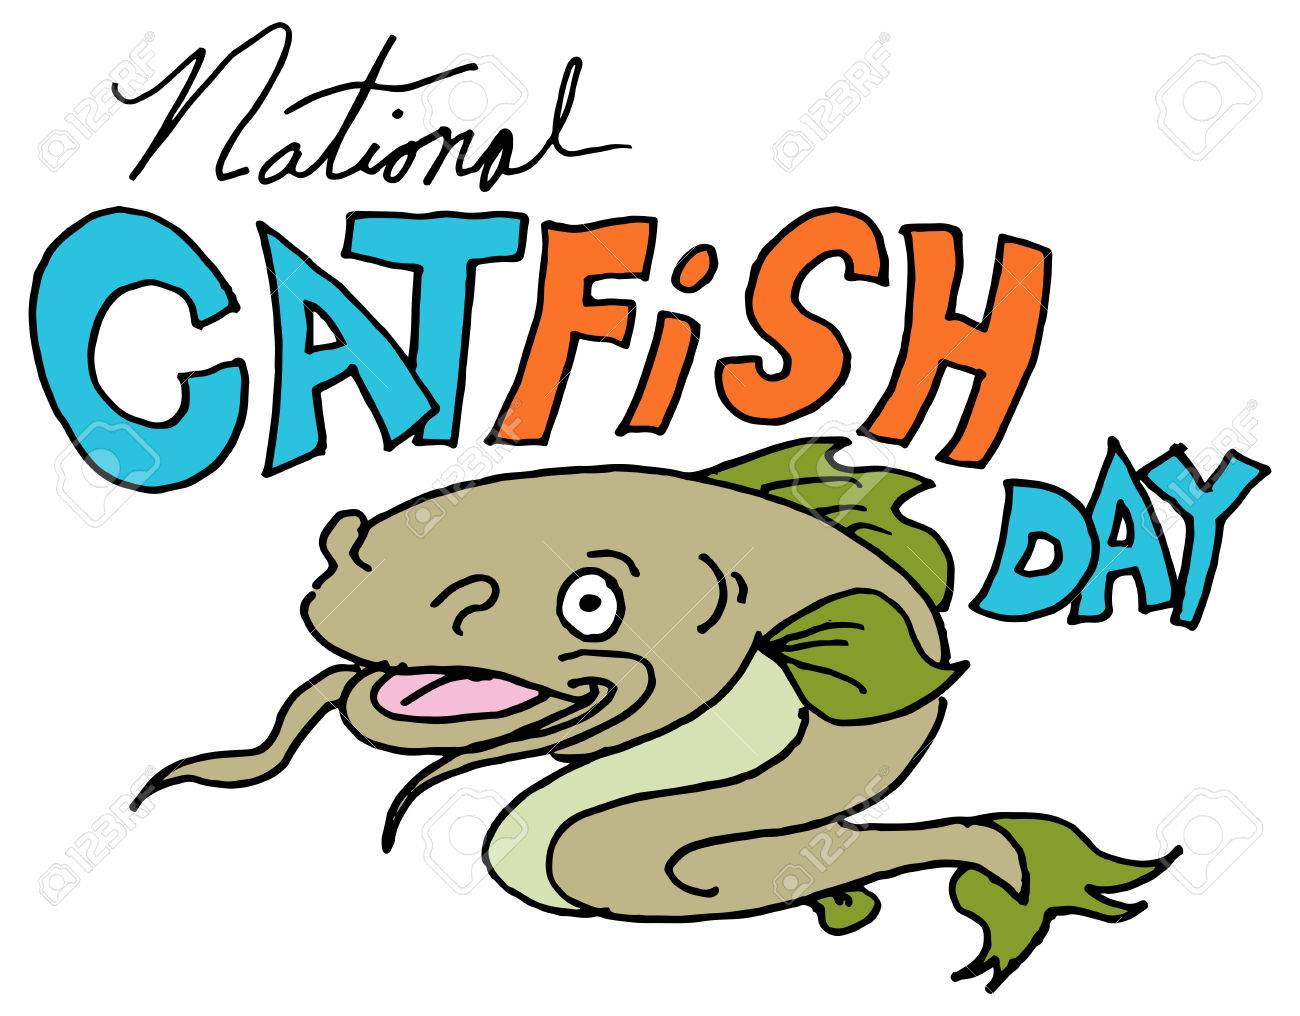 an image of a national catfish day royalty free cliparts vectors rh 123rf com Catfish Graphics Catfish Silhouette